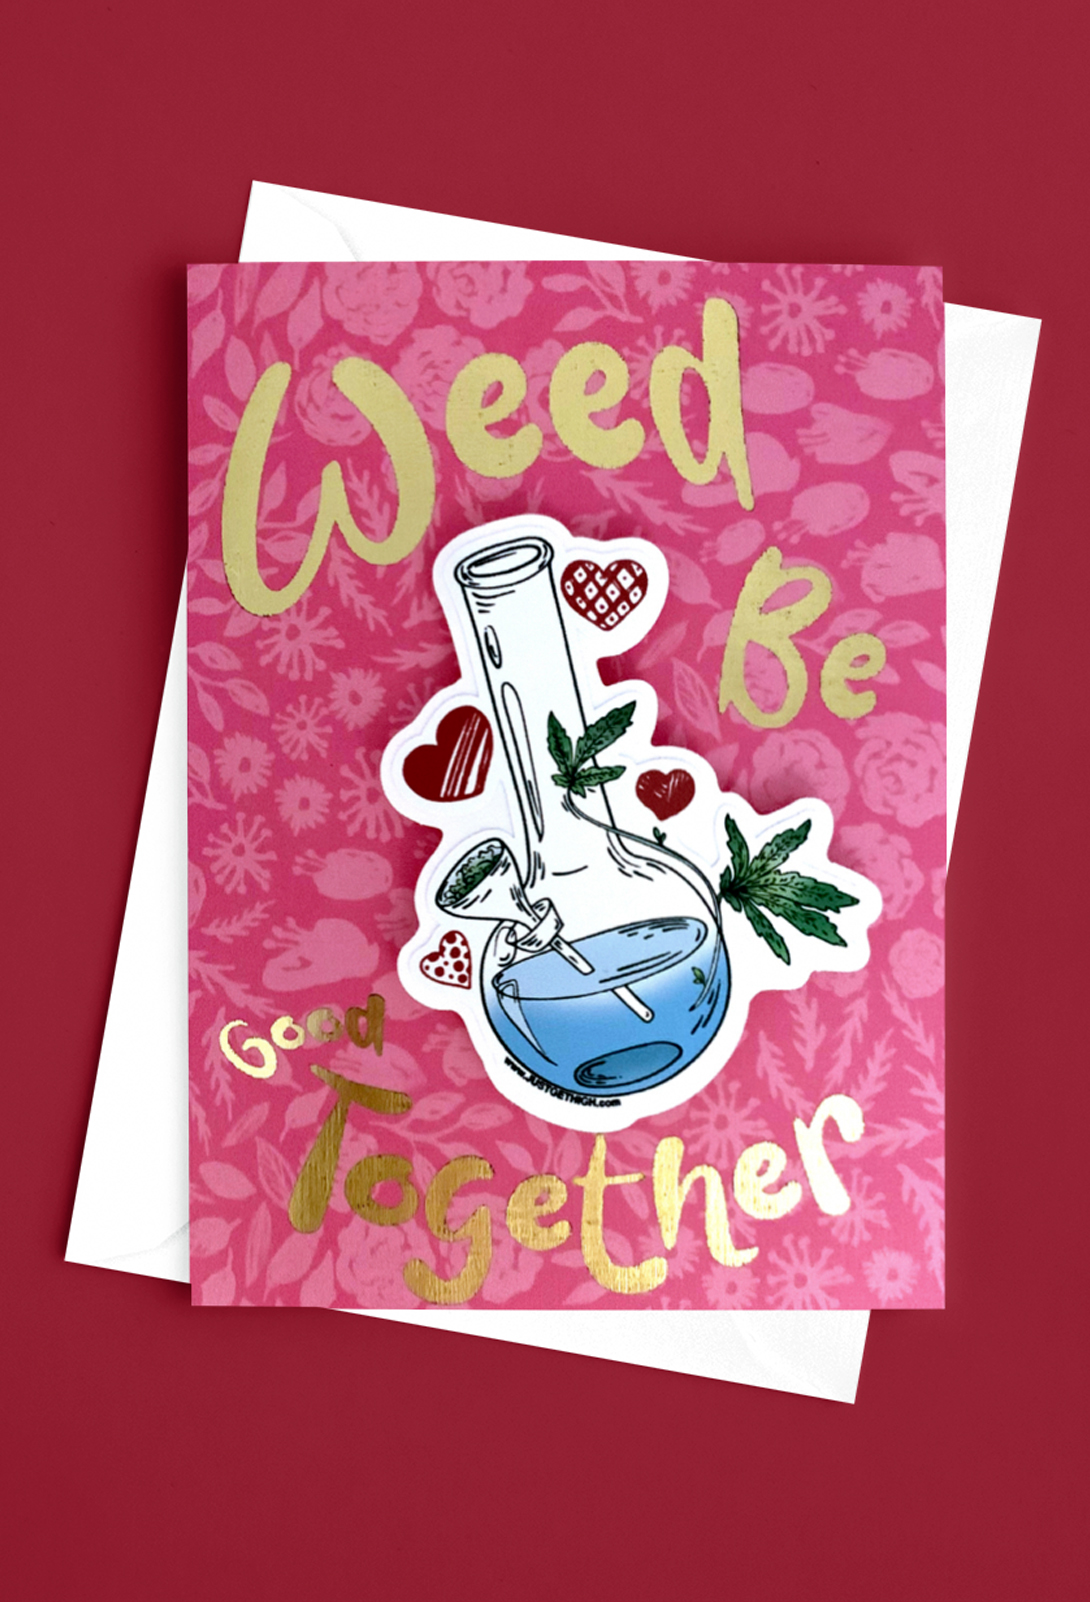 just get high_sticker card_weed be good together_new